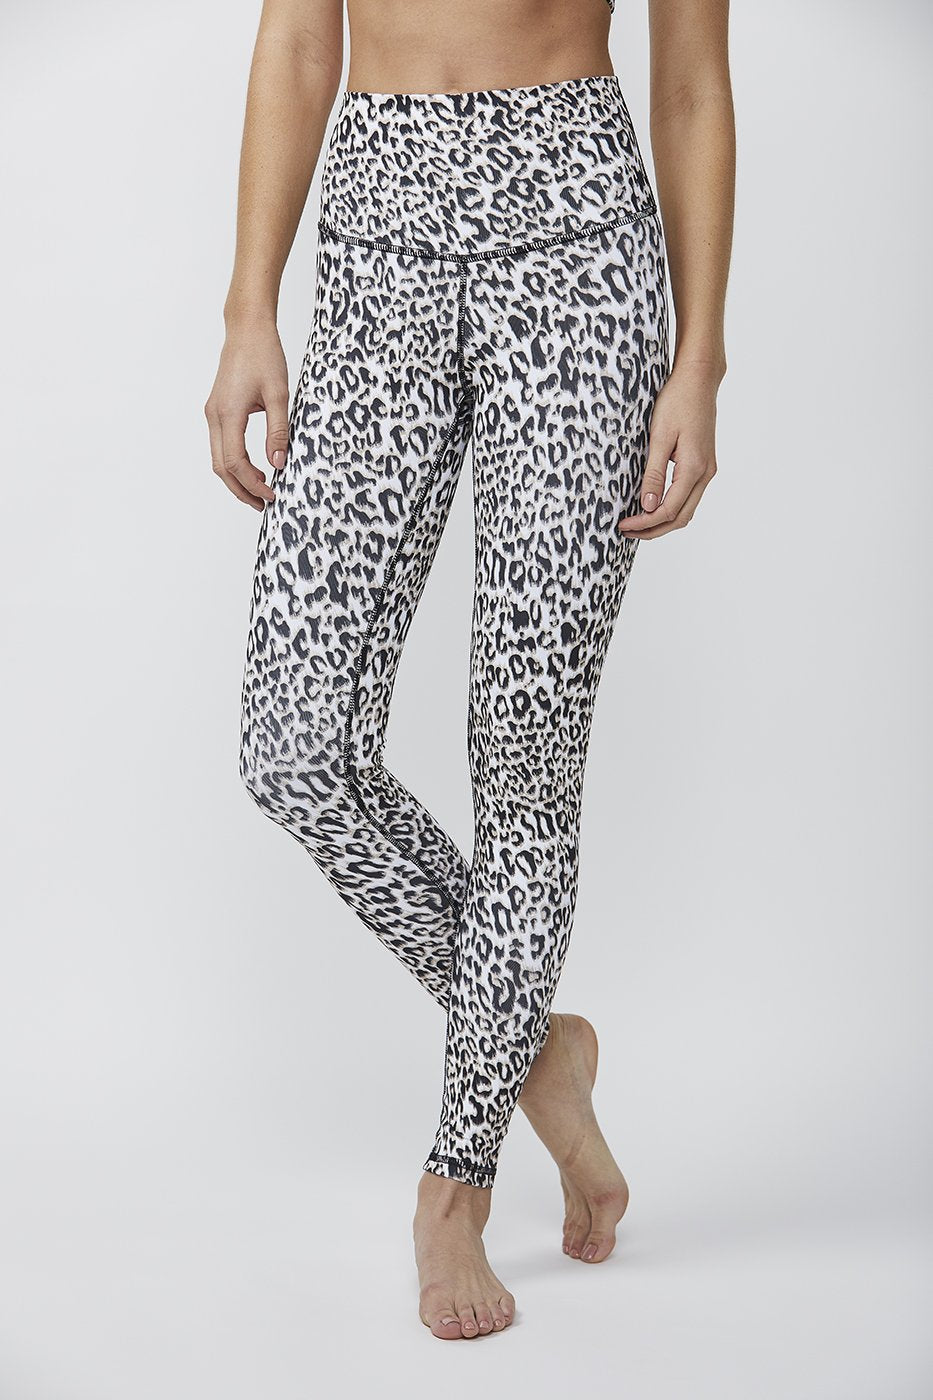 DYI Leopard Print Tight